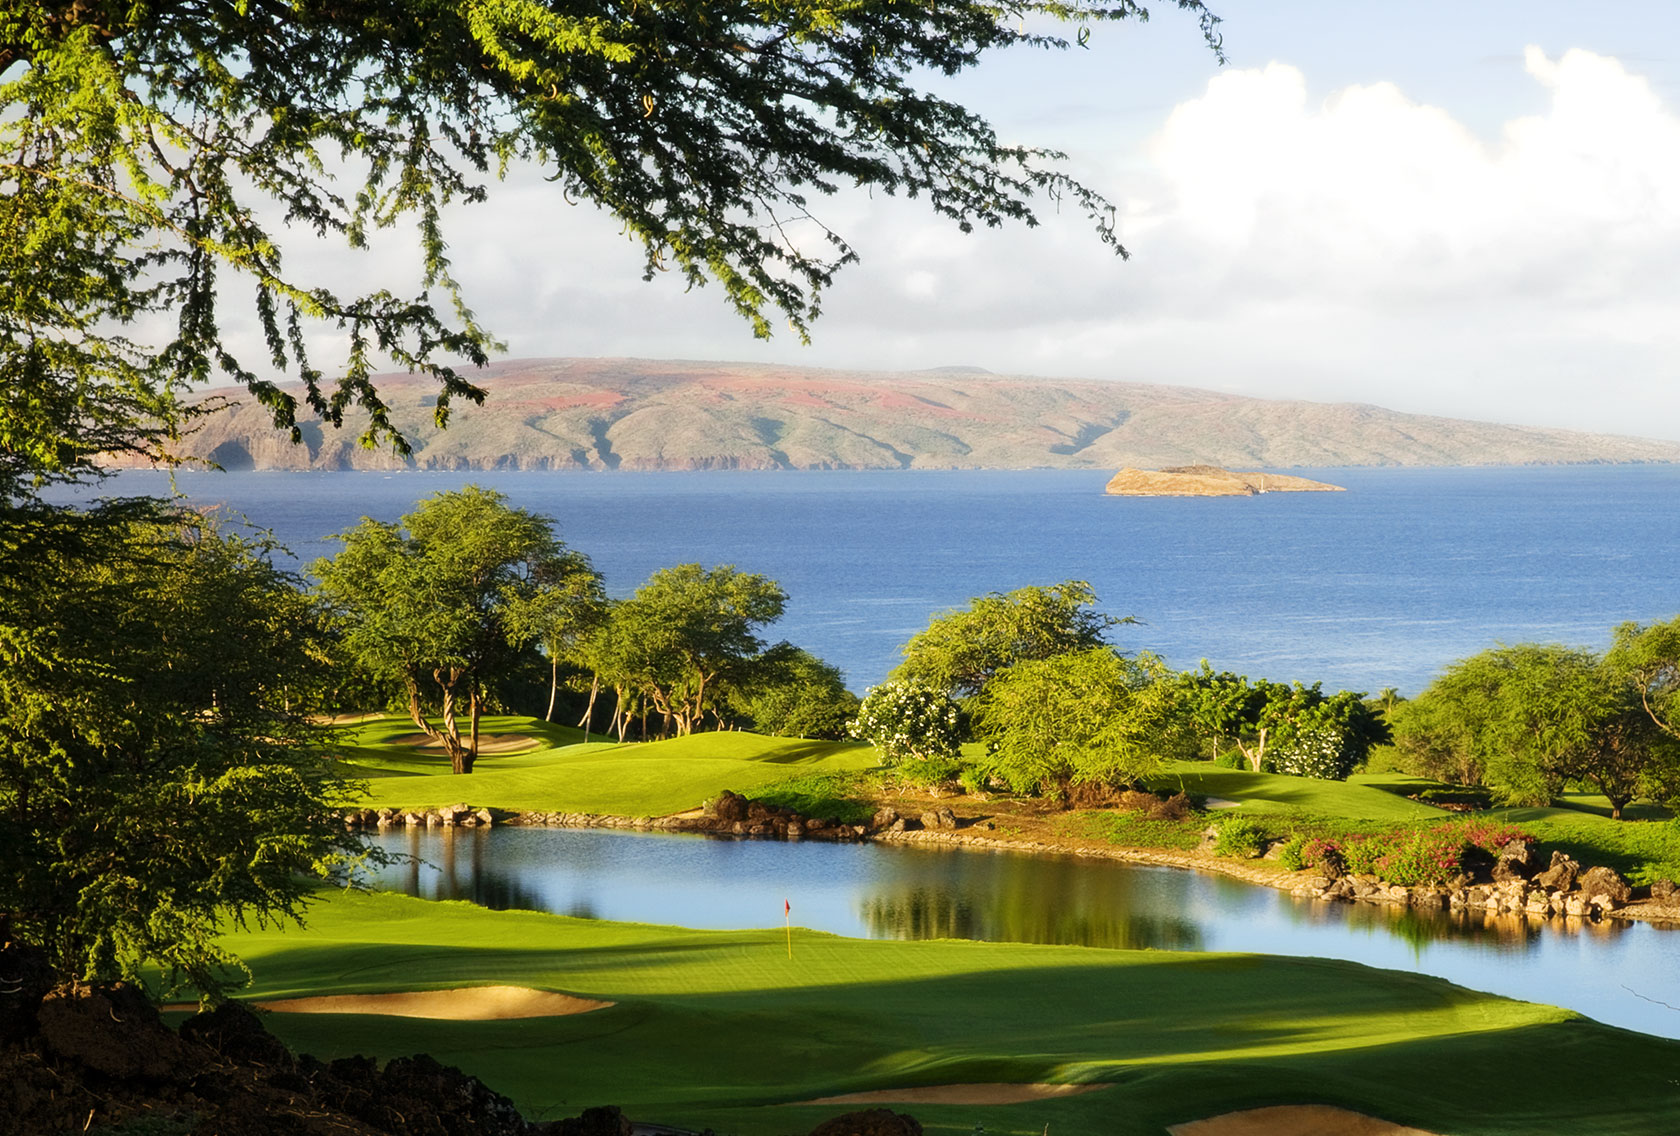 golf-wailea-emerald-green-mount-ocean-backdrop-168